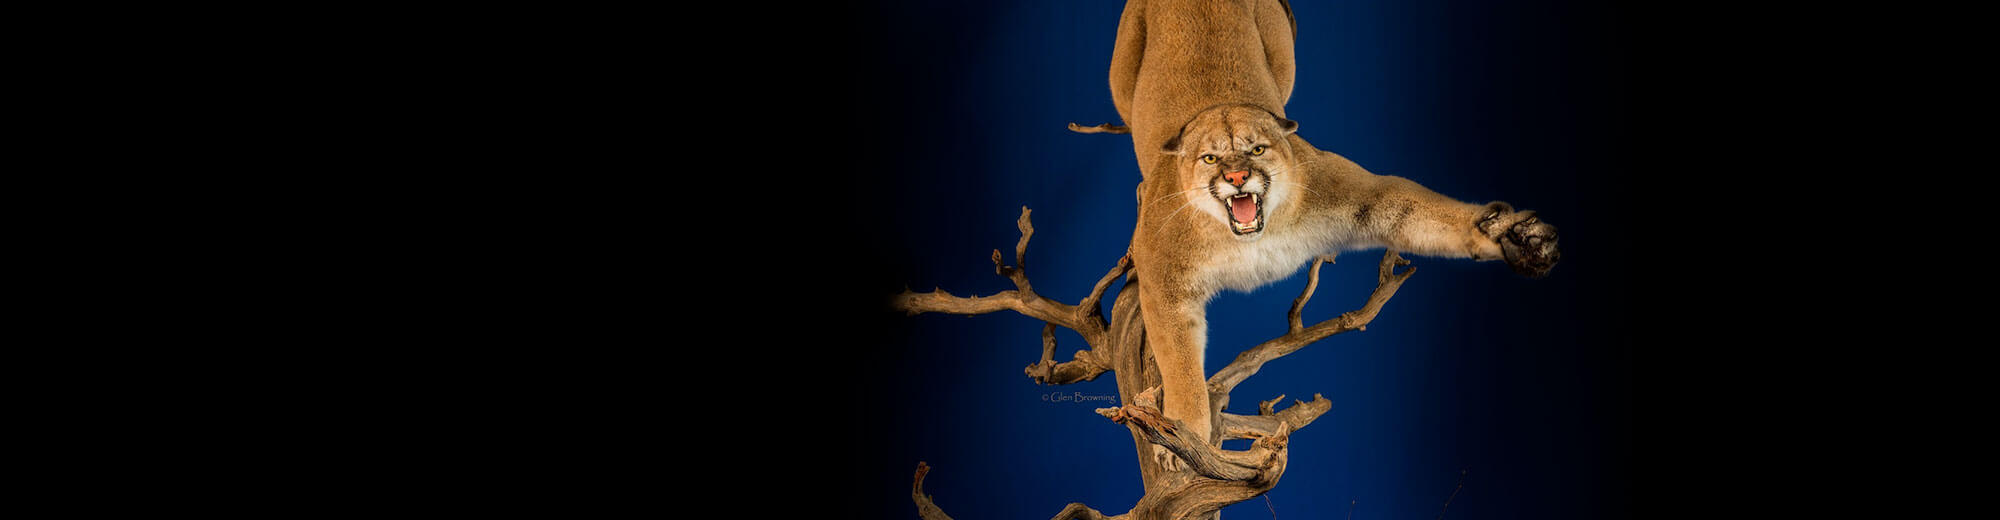 best in world large mammal - cougar mount by Ashley Barrett